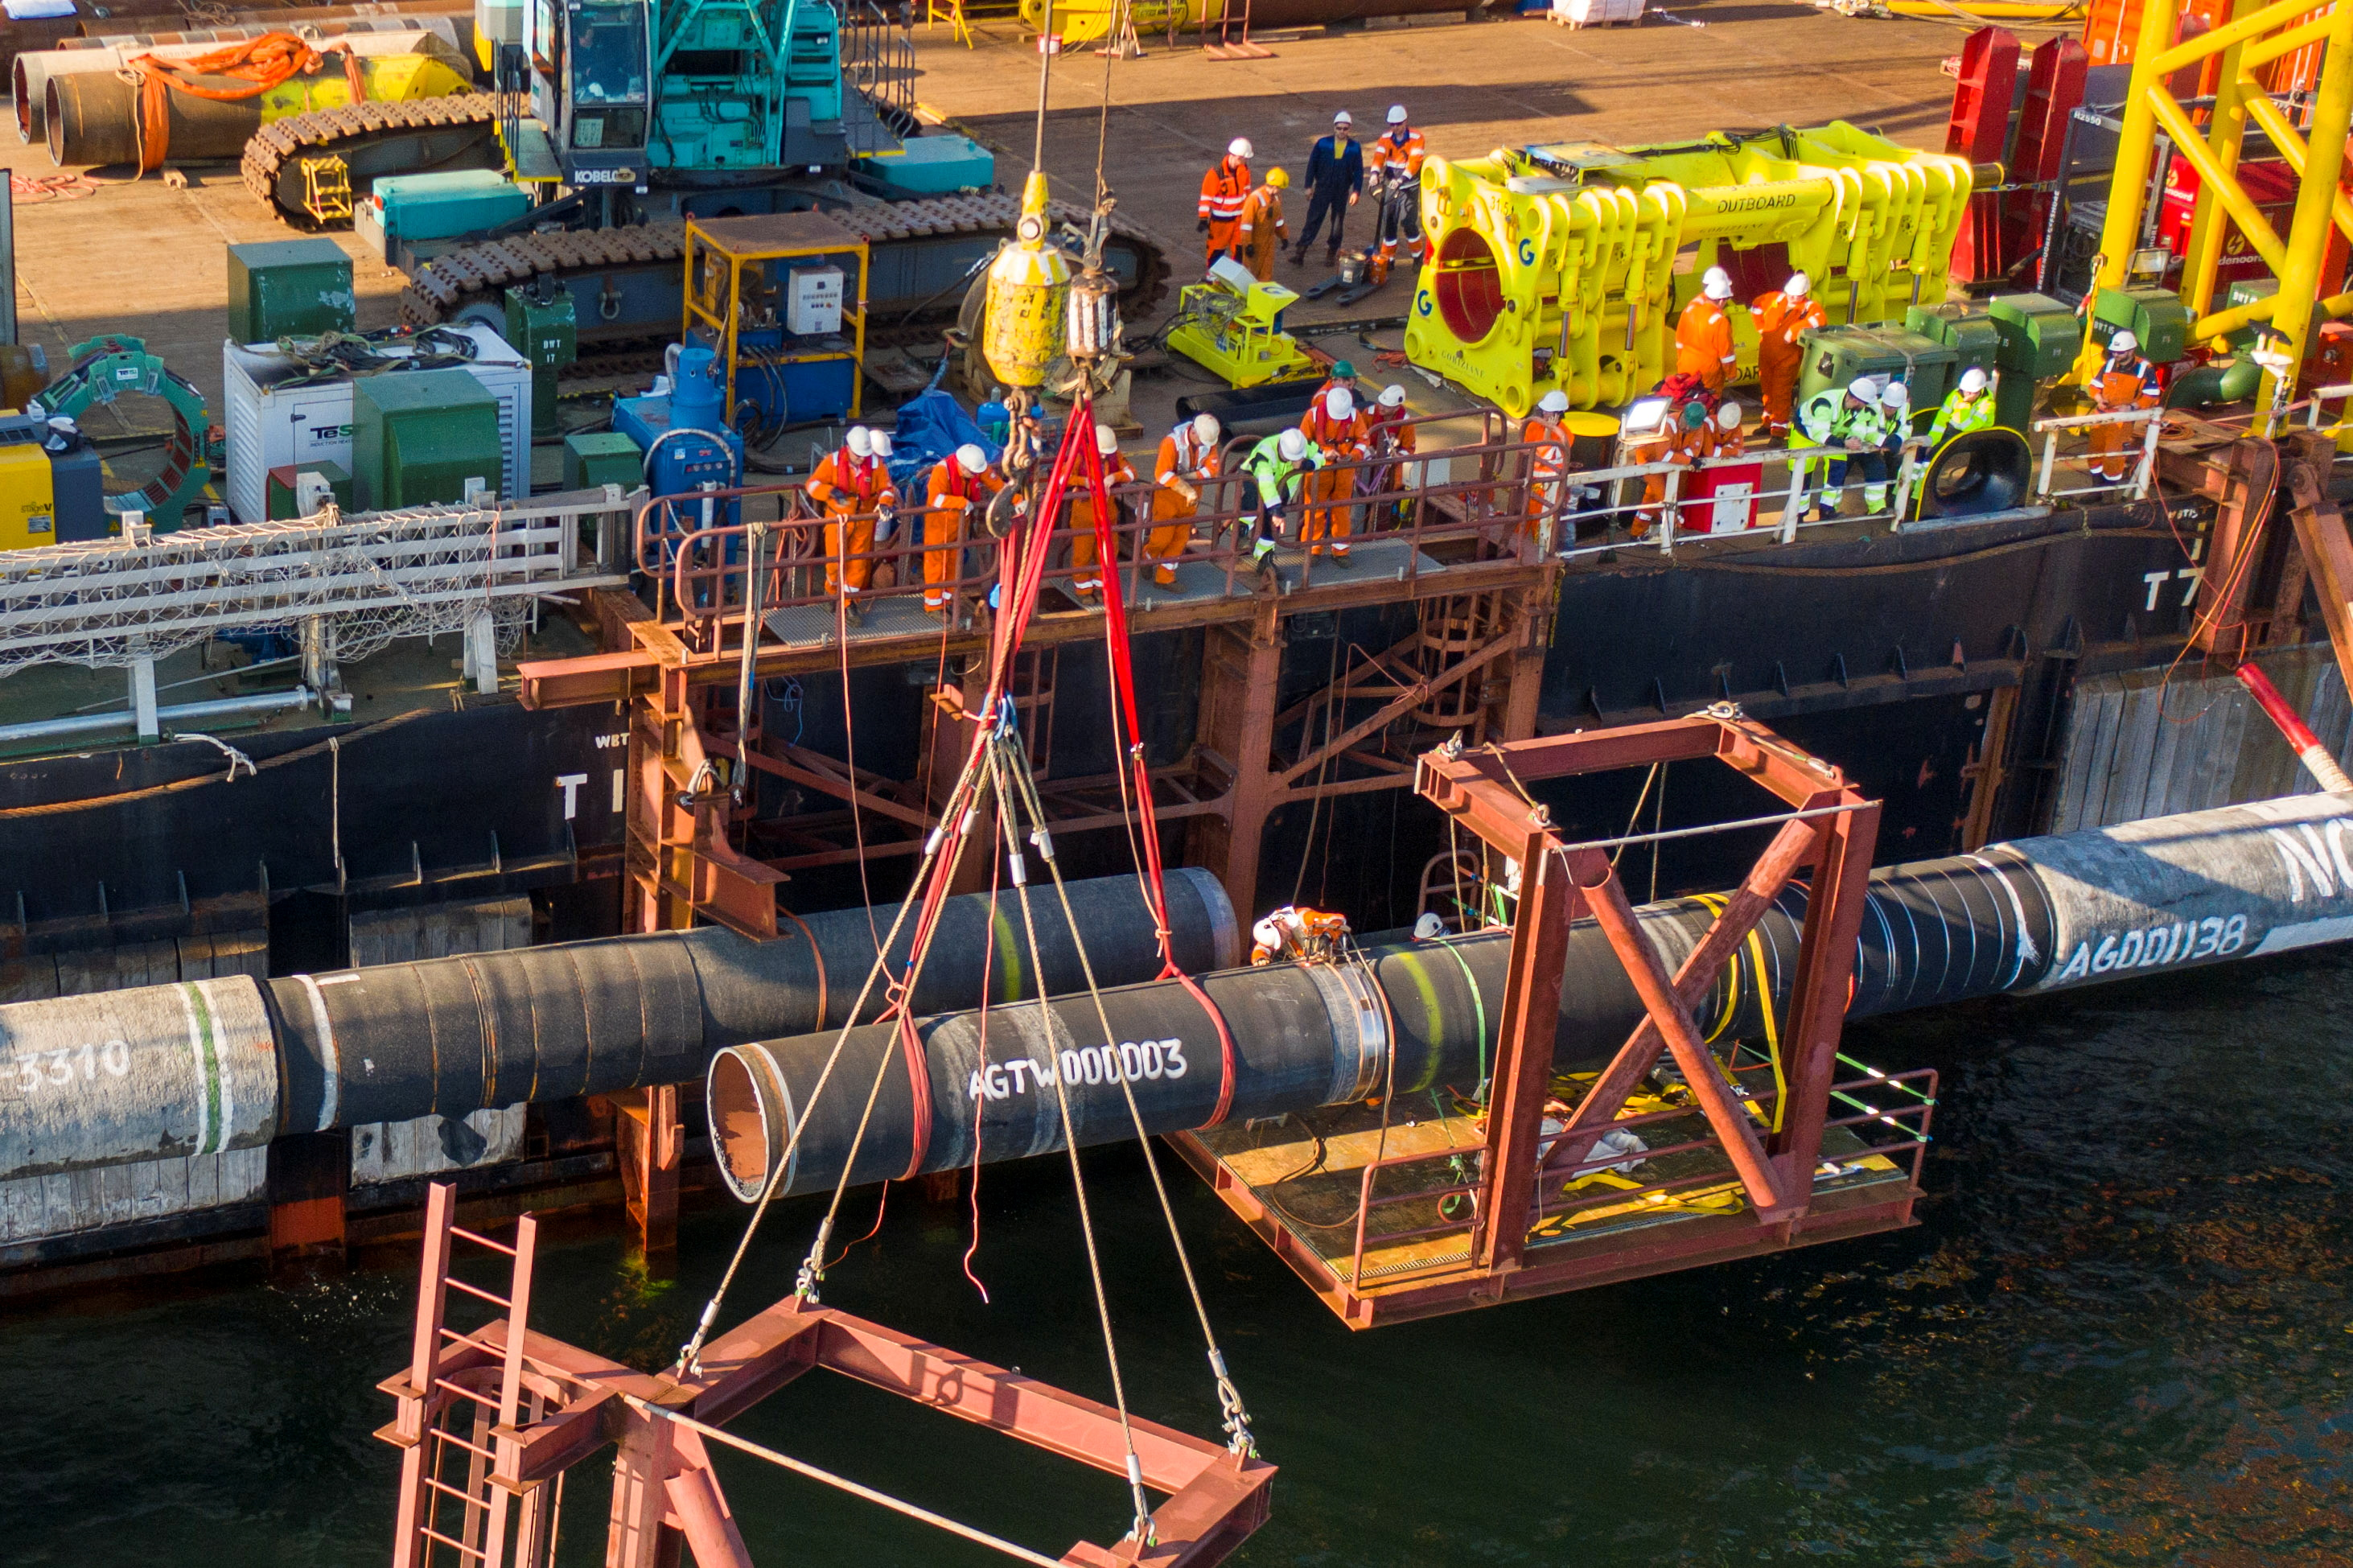 Specialists perform an above-water tie-in while finishing the construction of the Nord Stream 2 gas subsea pipeline onboard the laybarge Fortuna in the Baltic Sea, September 8, 2021. Picture taken September 8, 2021. Nord Stream 2/Handout via REUTERS